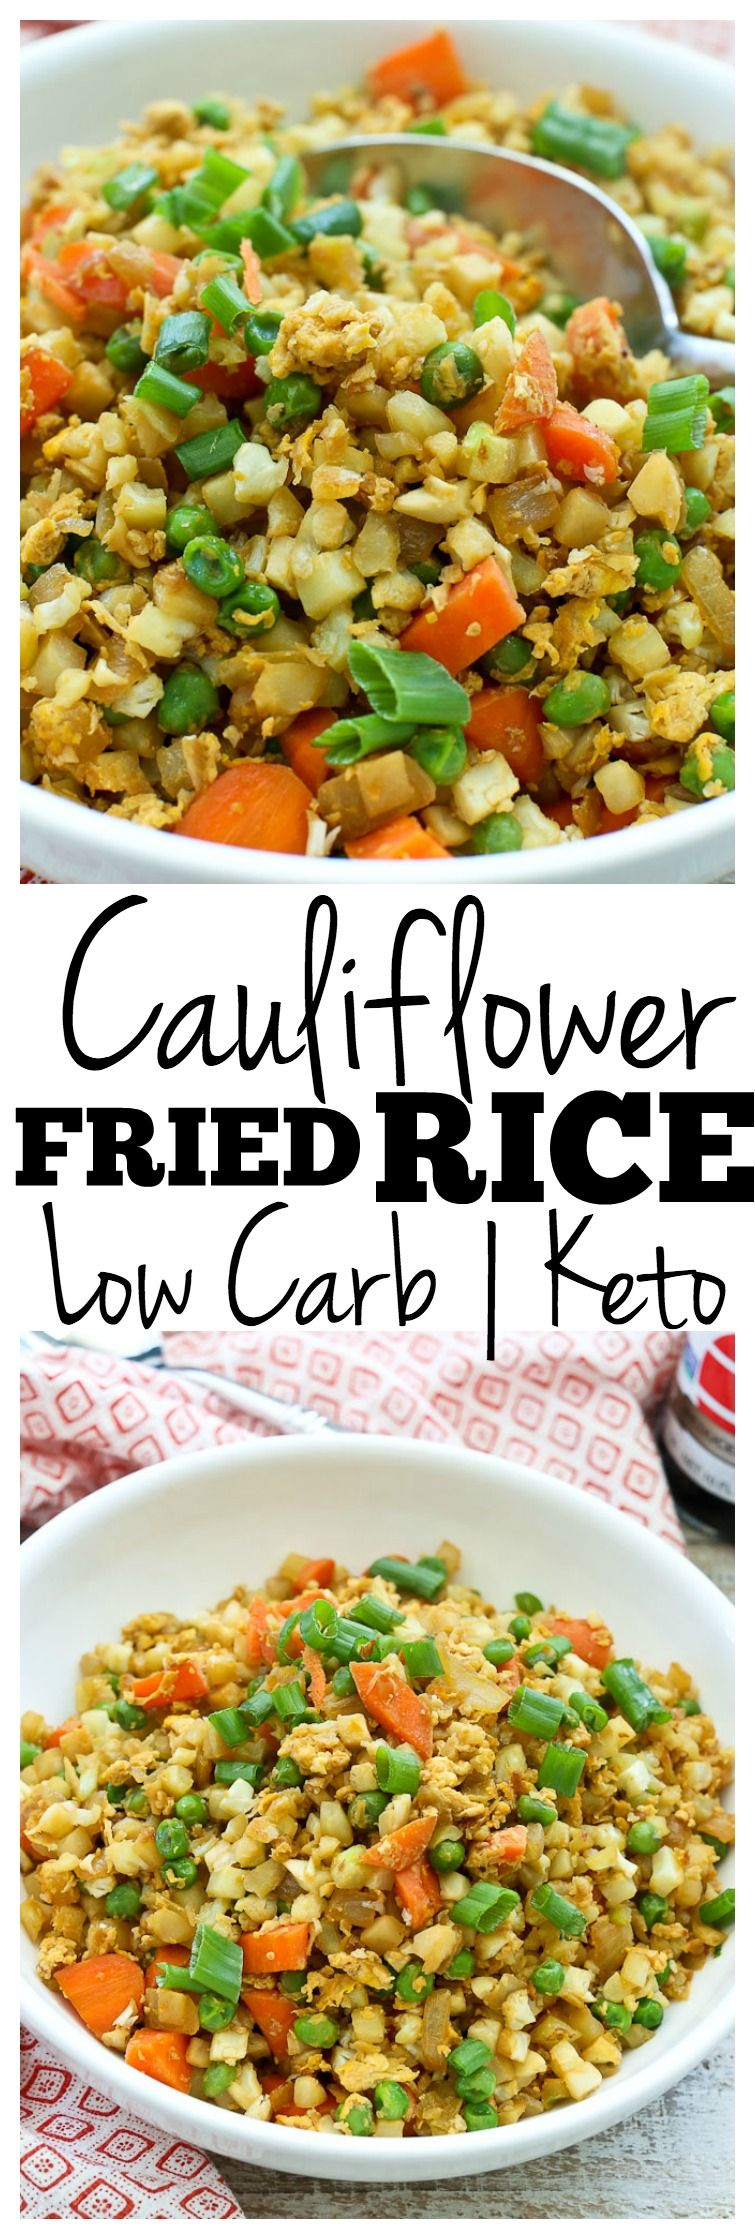 Cauliflower Fried Rice images